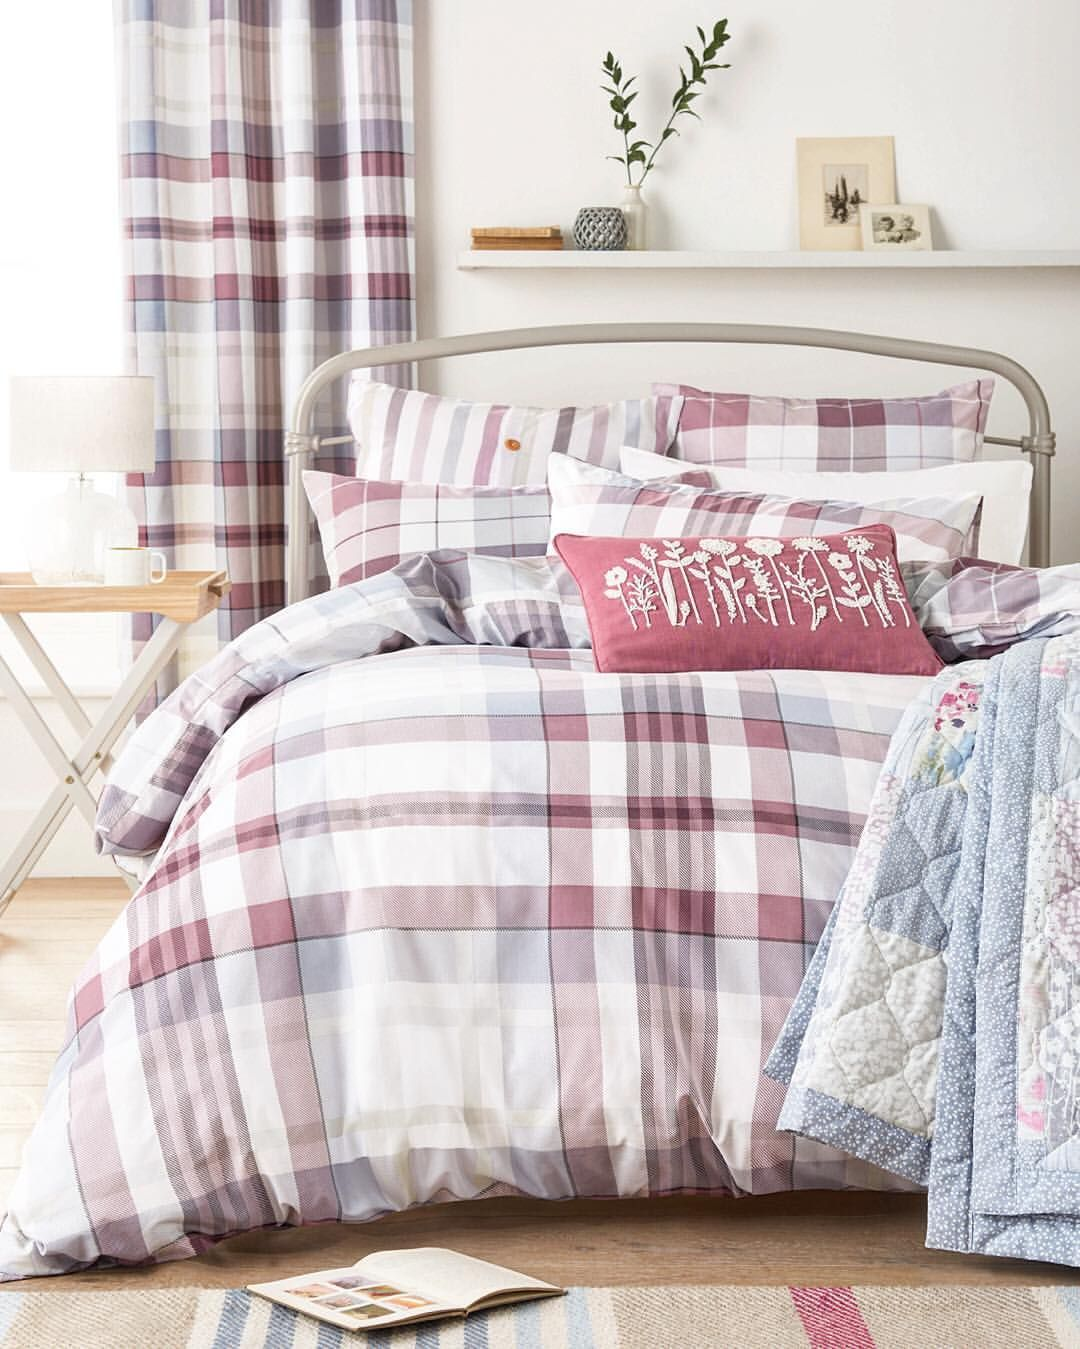 Just like bread and butter, left and right, table and chairs.... Sunday and your bed are an inseparable combination  Transform your bedroom into the perfect Sunday sanctuary by tapping the link in our bio and exploring NEW bedding ranges. #perfectpairs #bedding #home #homedecor #bedroom #check #countrycottage #sunday #relax Product code: 362056